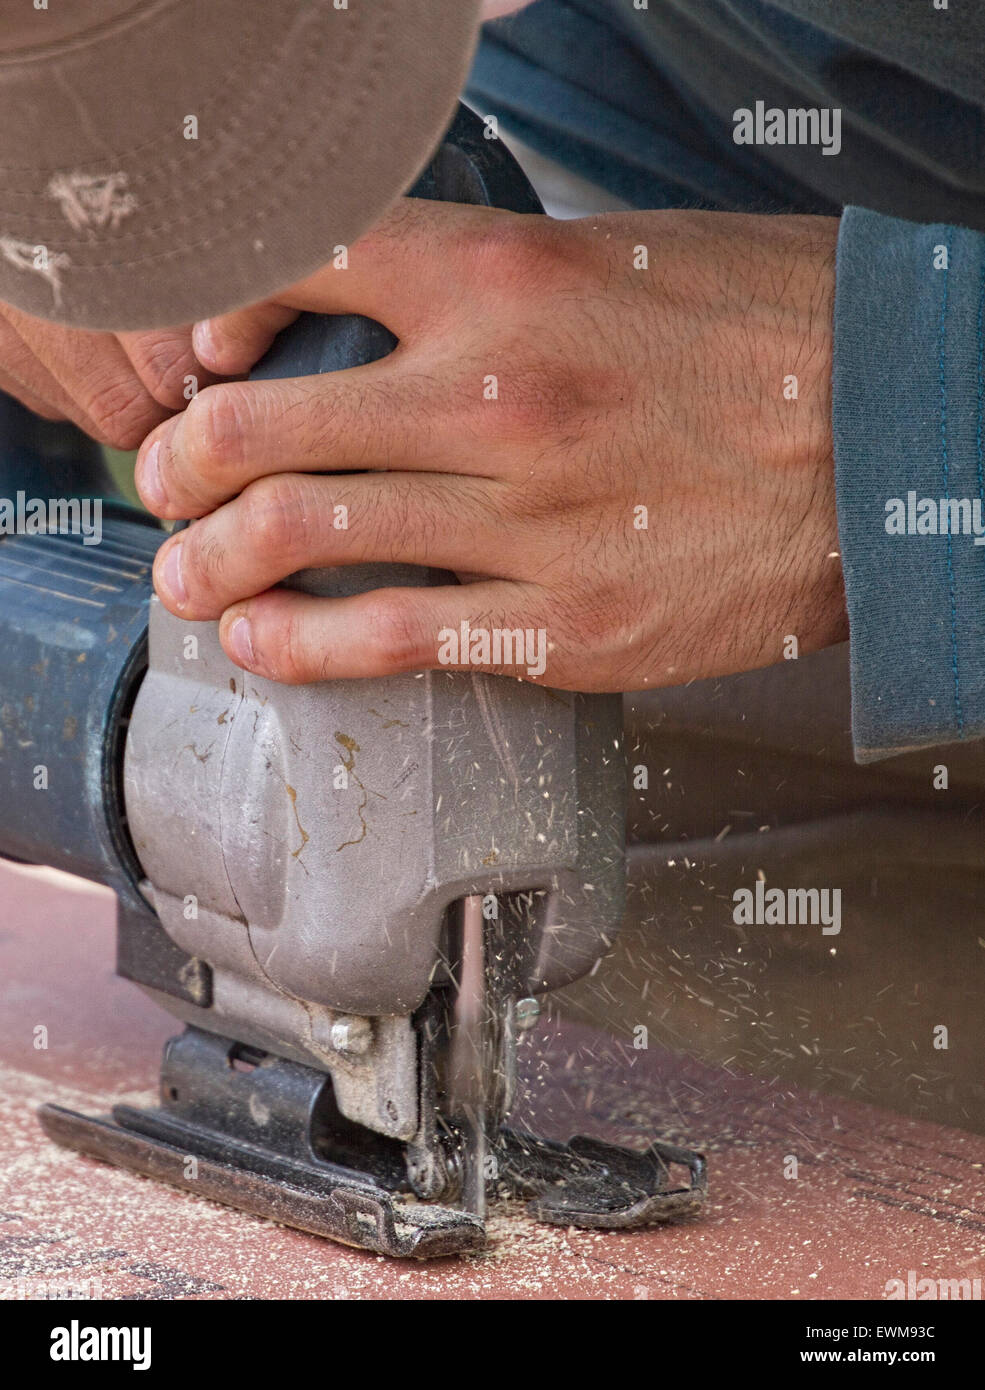 Close up of a man's hands operating a table saw tool while cutting plywood - Stock Image